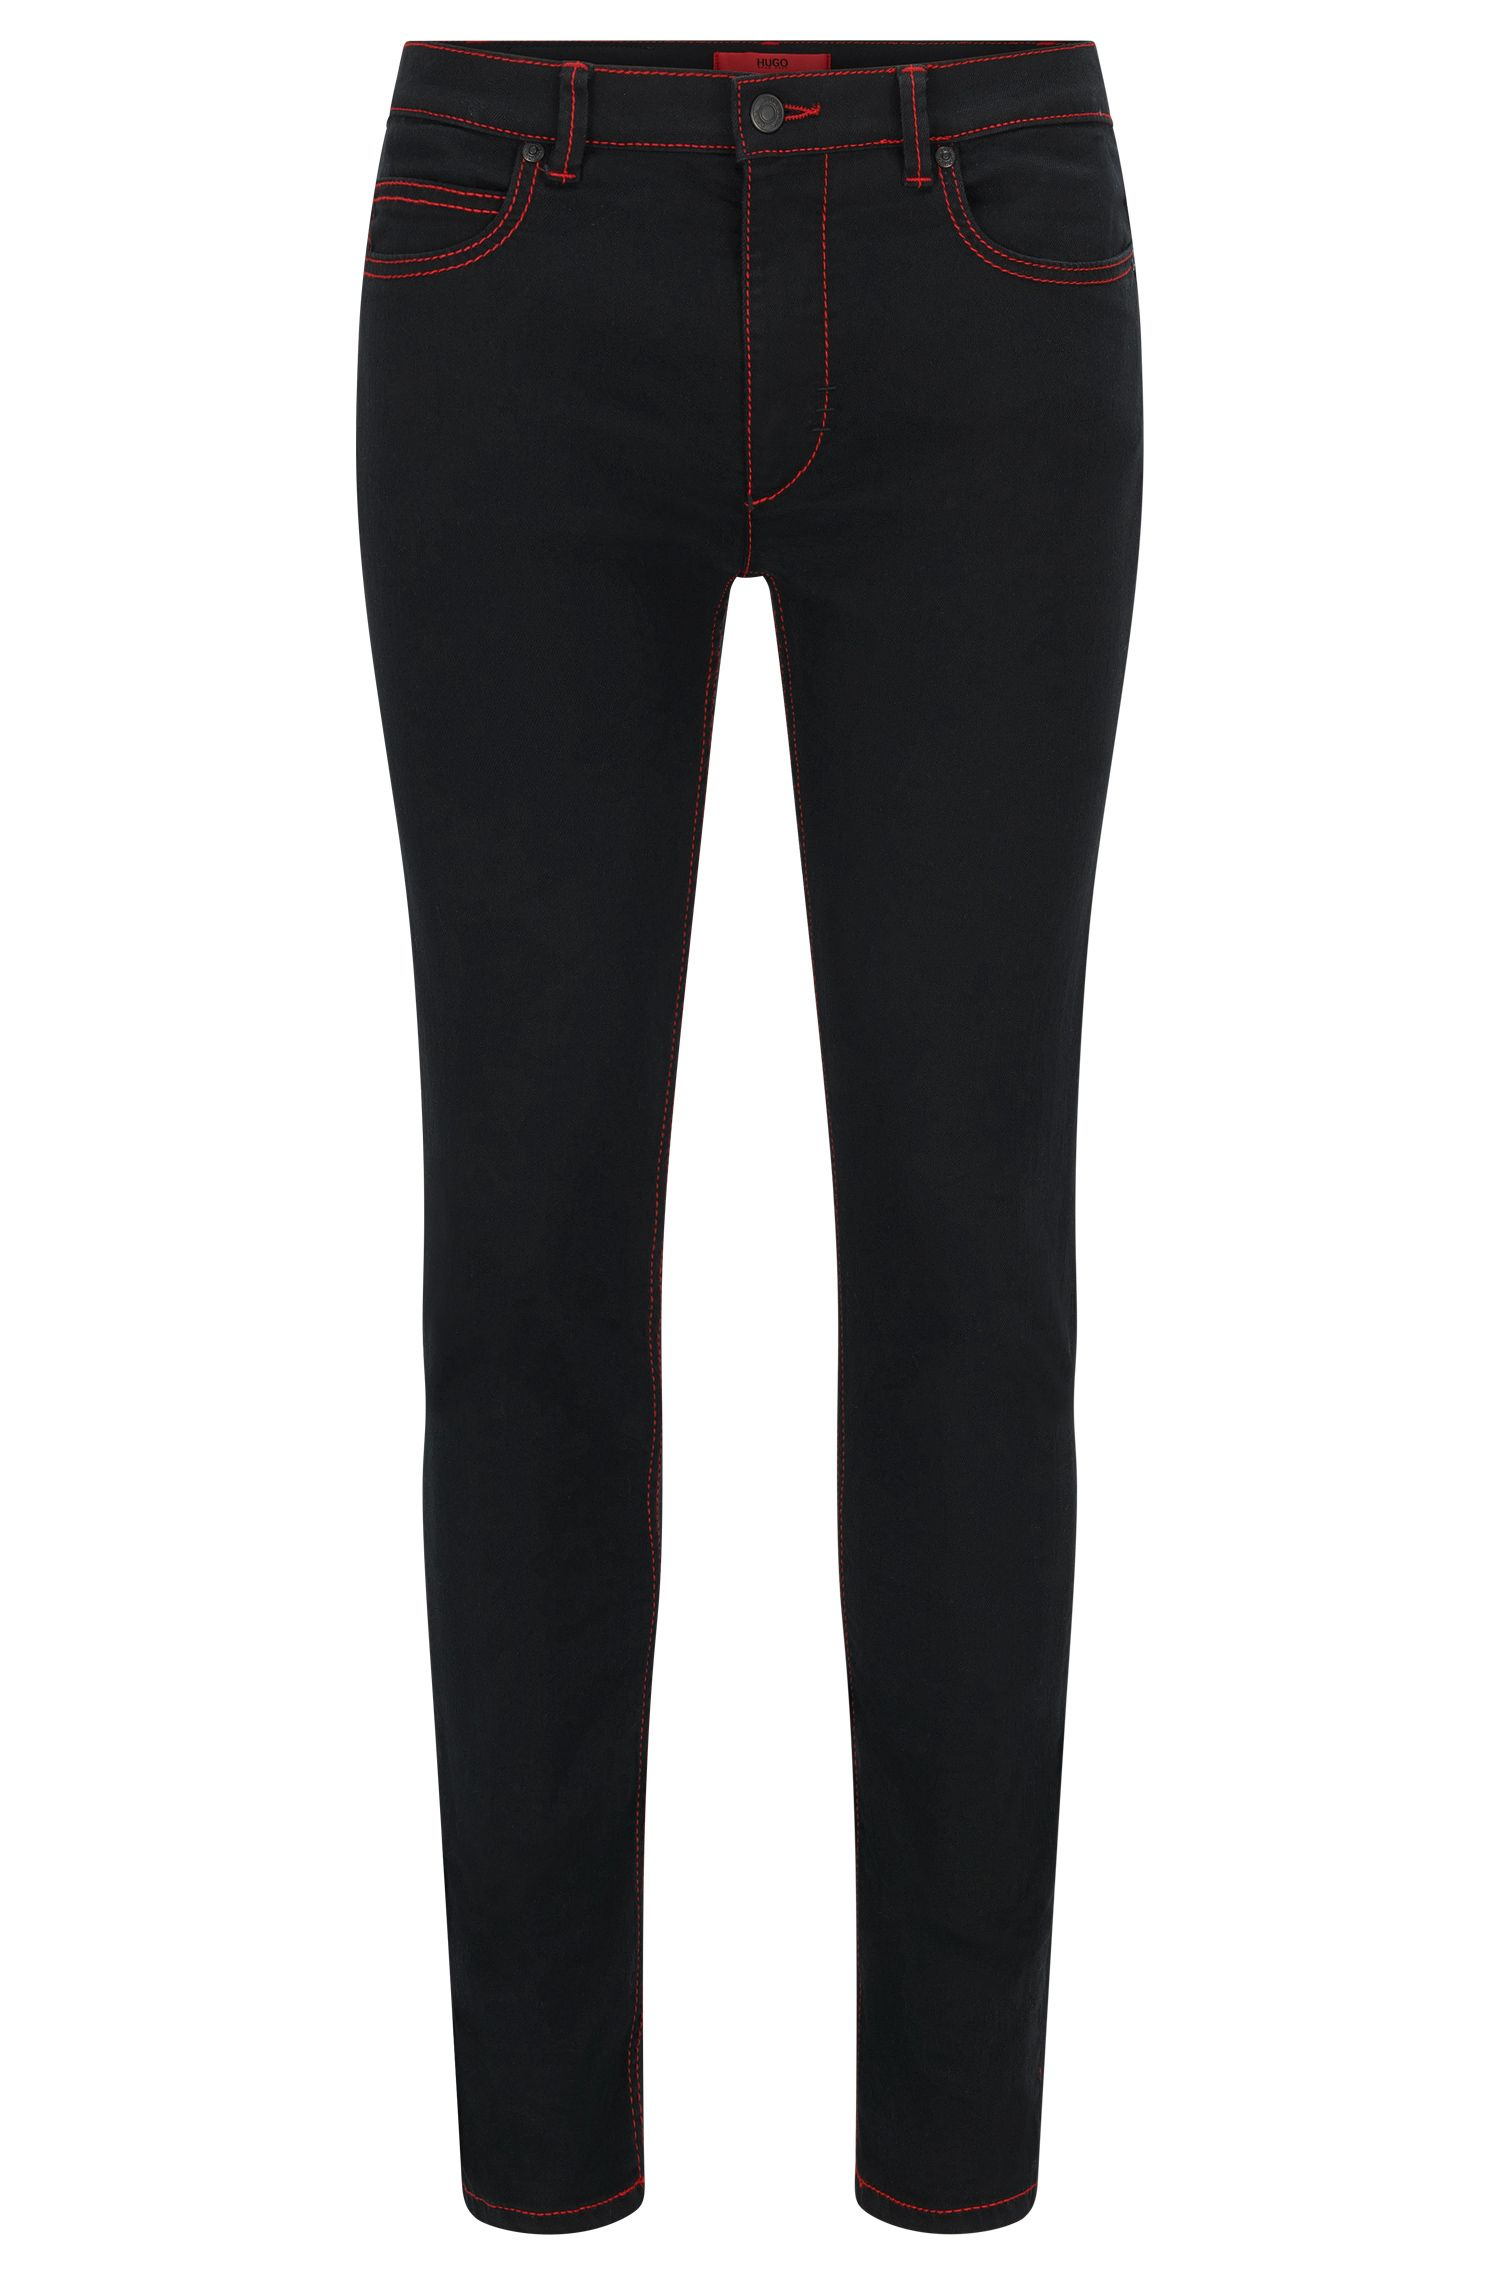 Skinny-fit jeans with red stitching